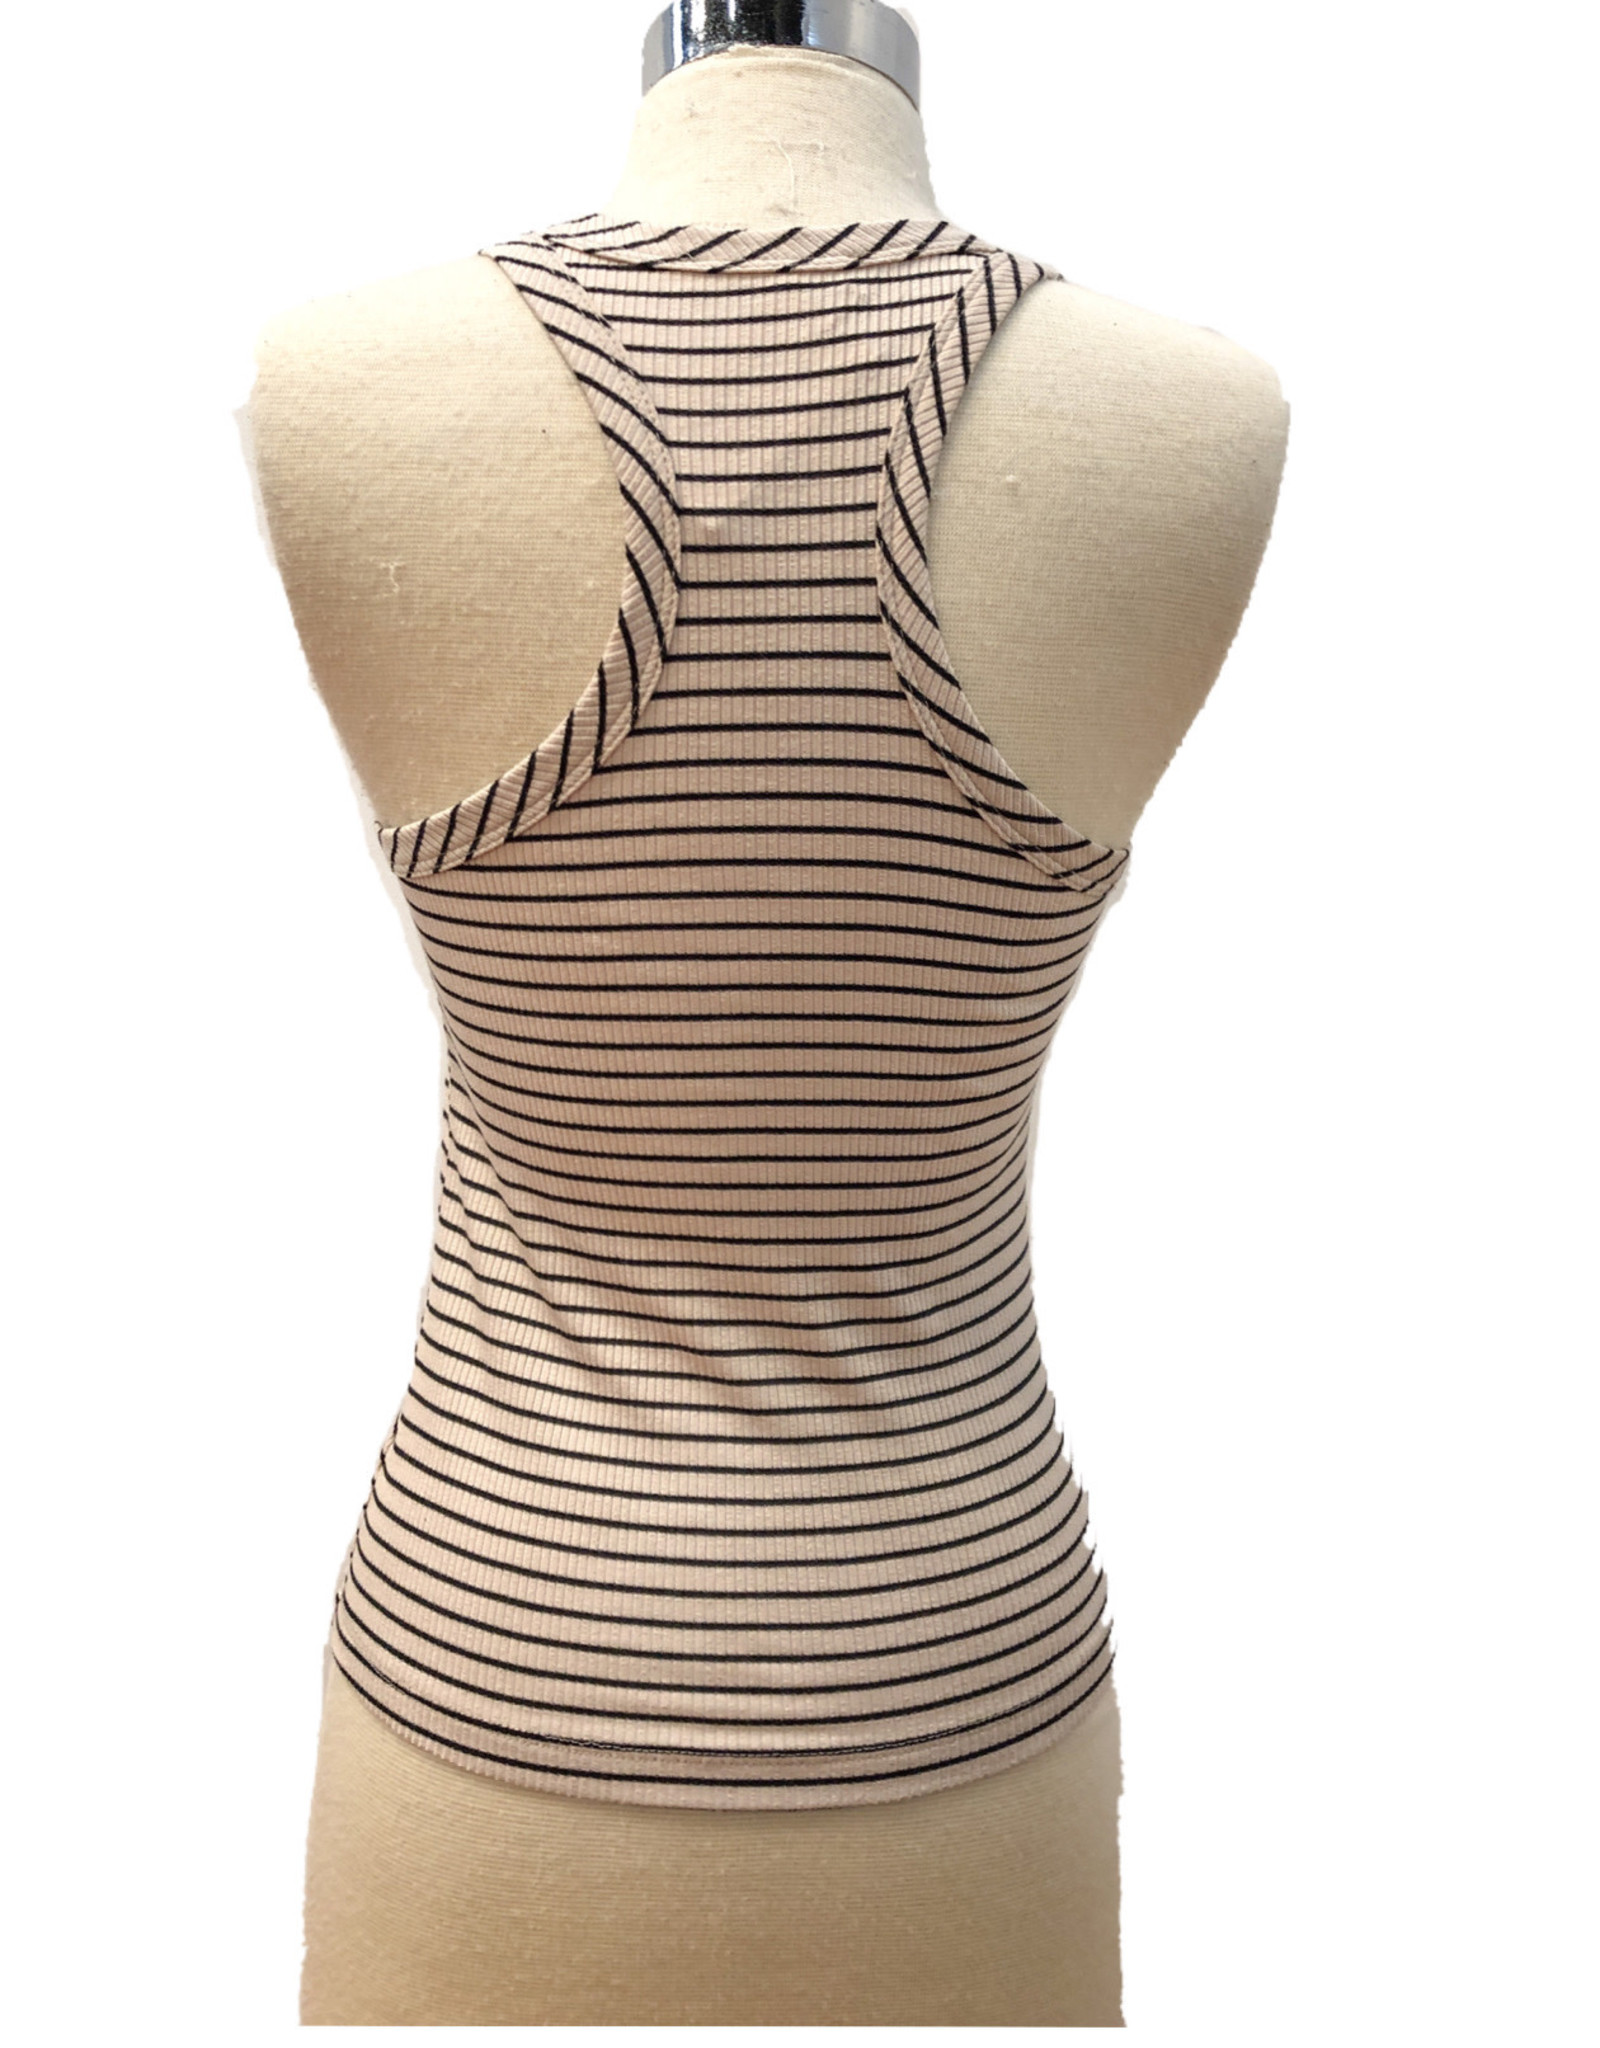 T17352A STRIPED RACER BACK TANK